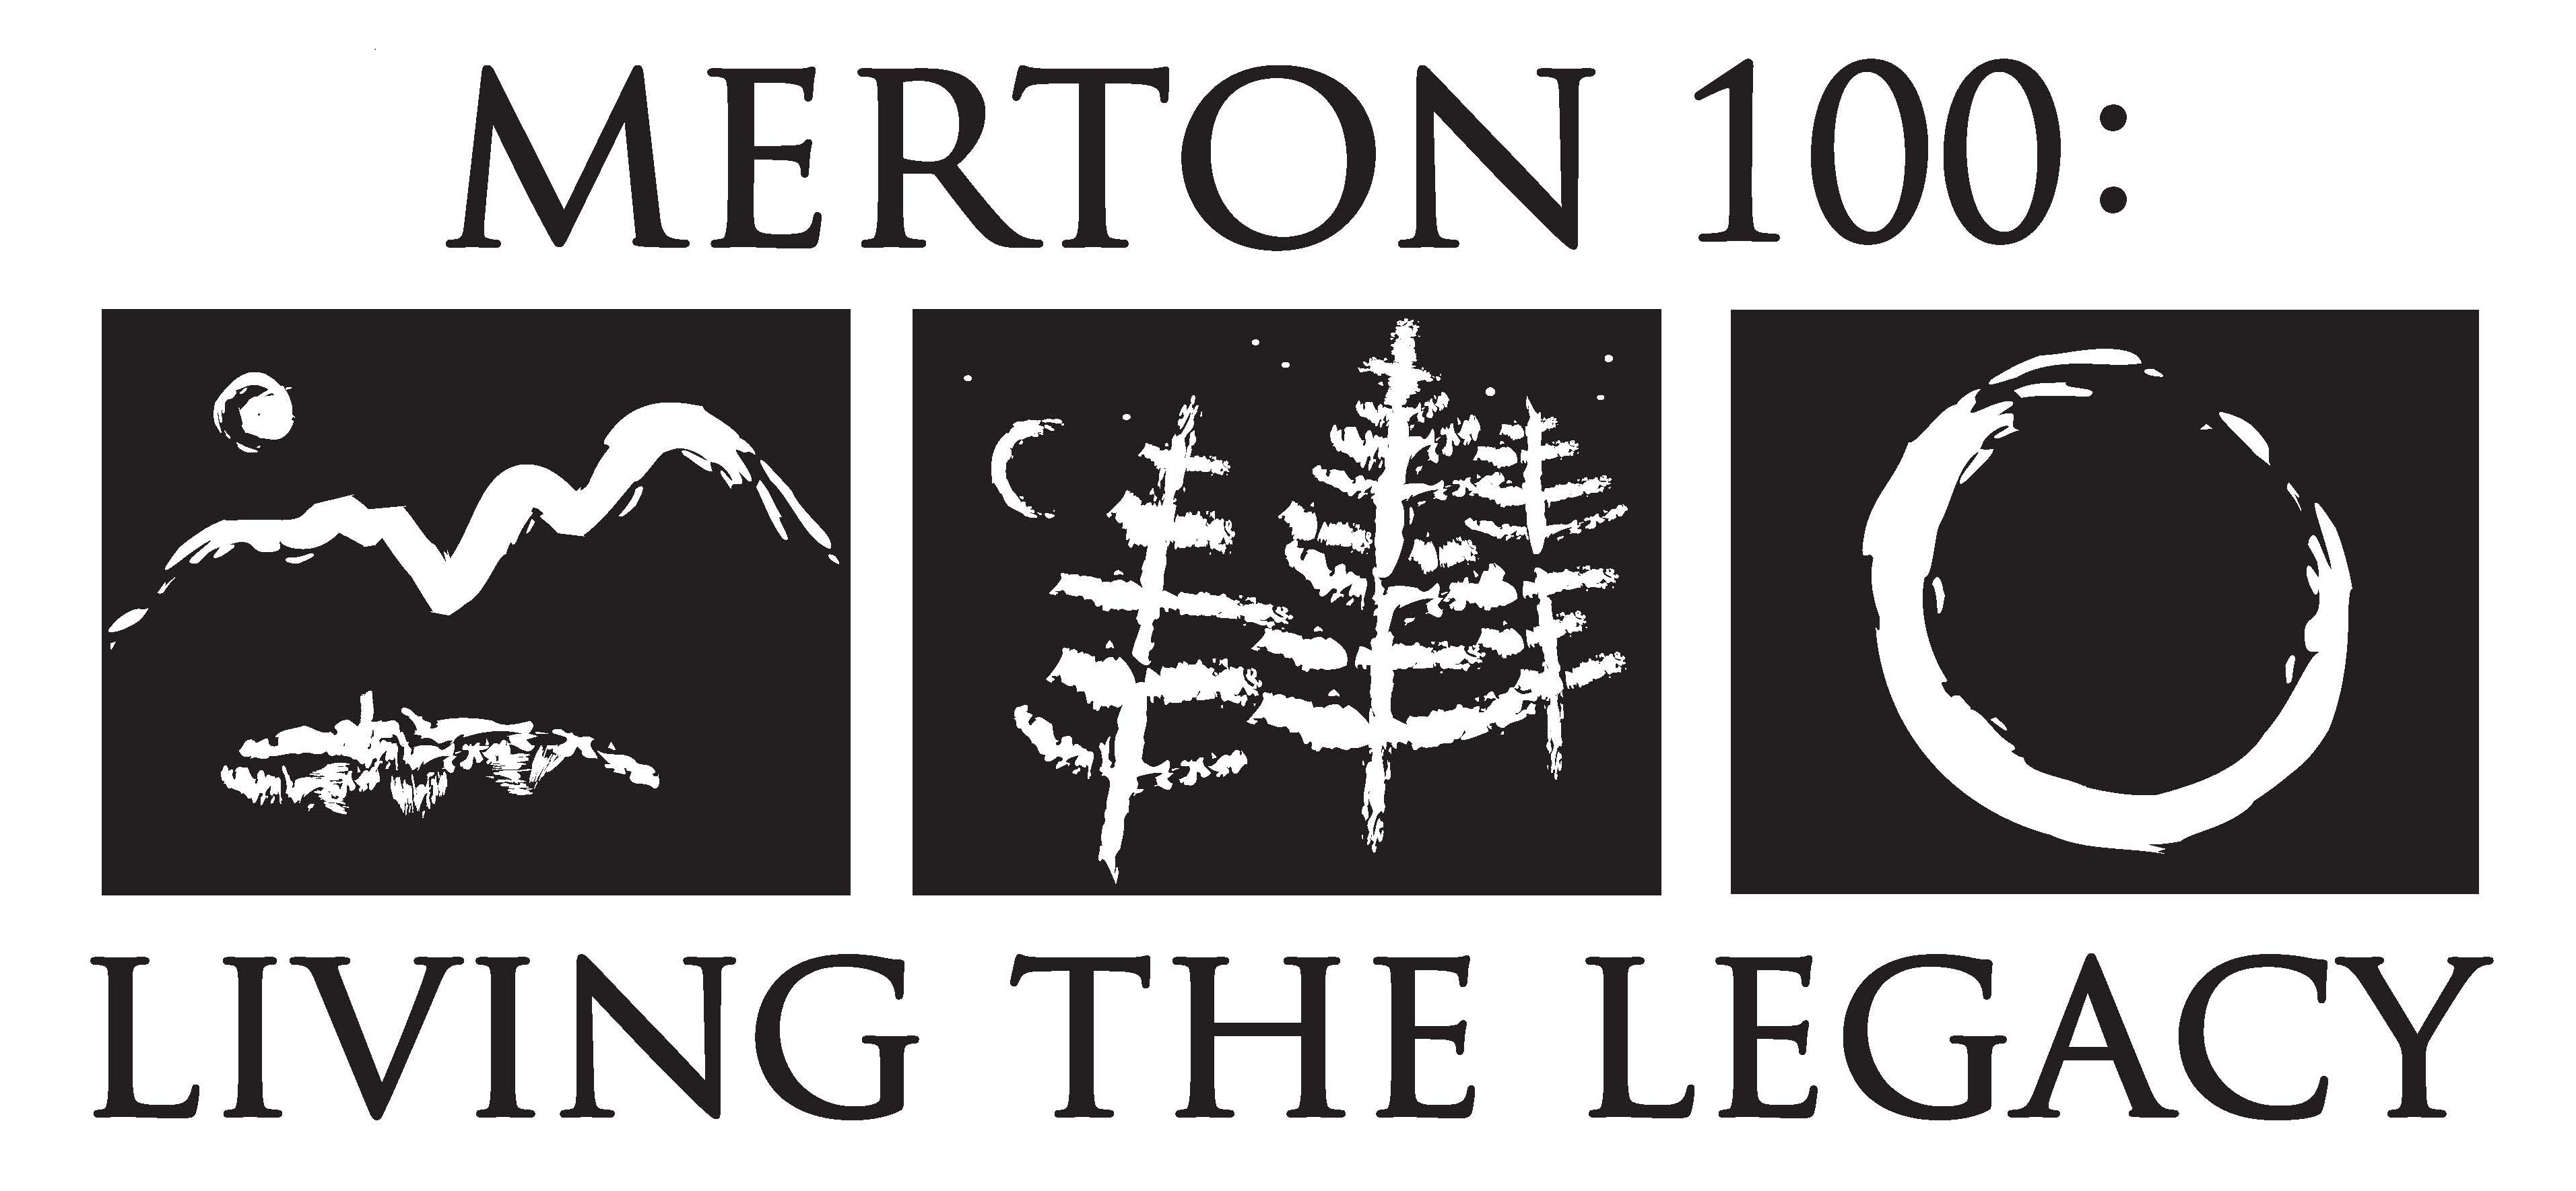 Merton 100: Living the Legacy